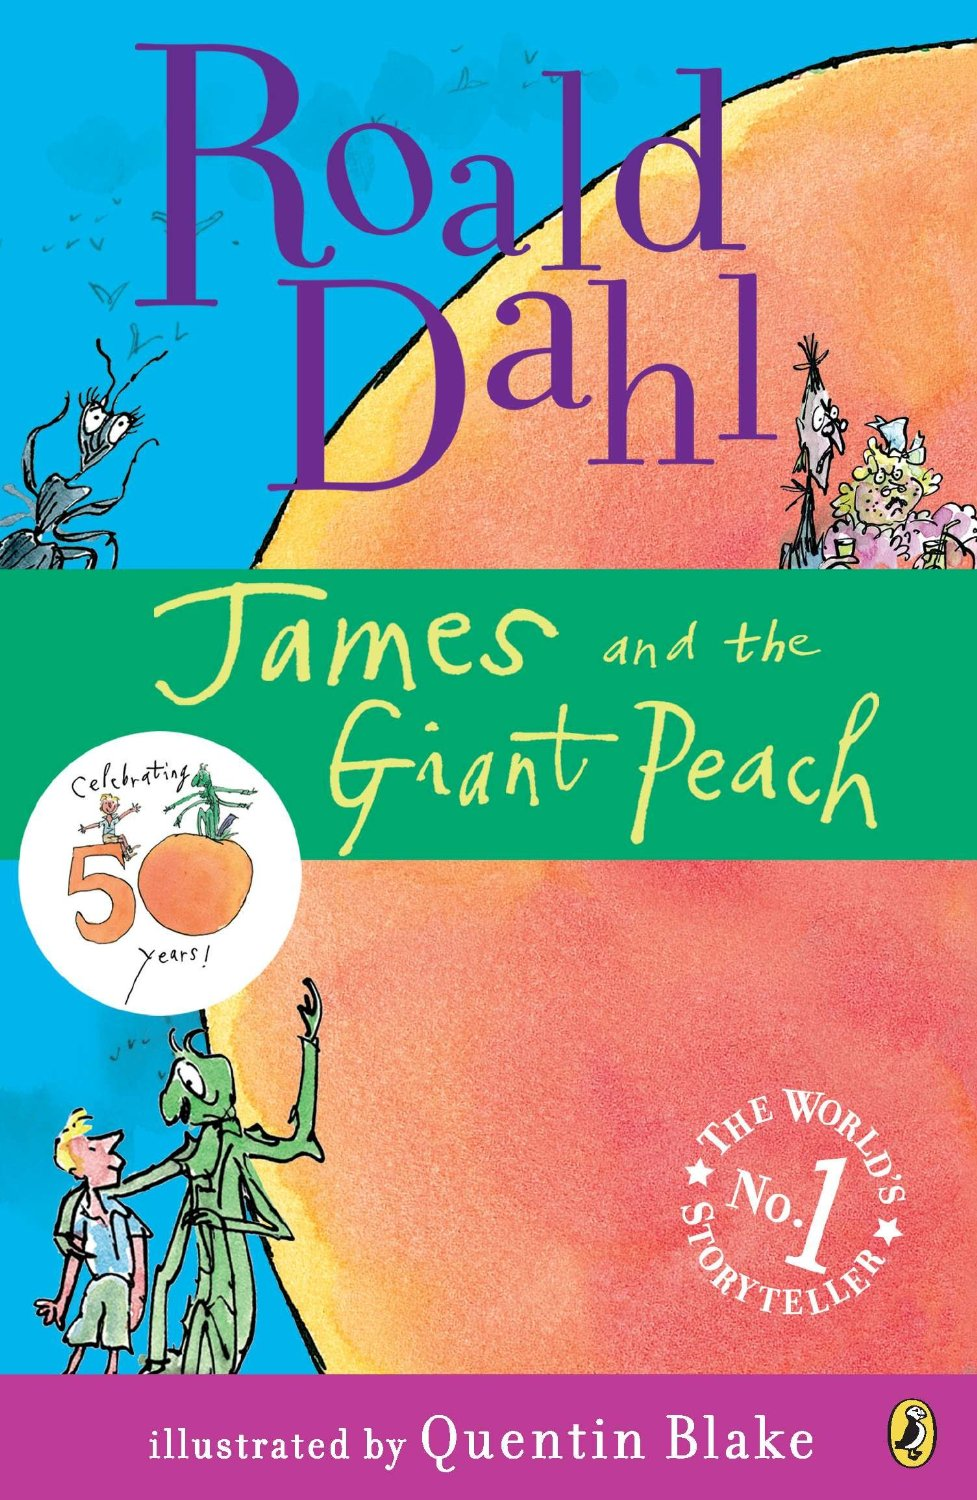 """James and the Giant Peach""를 샘 멘데스가 다.."